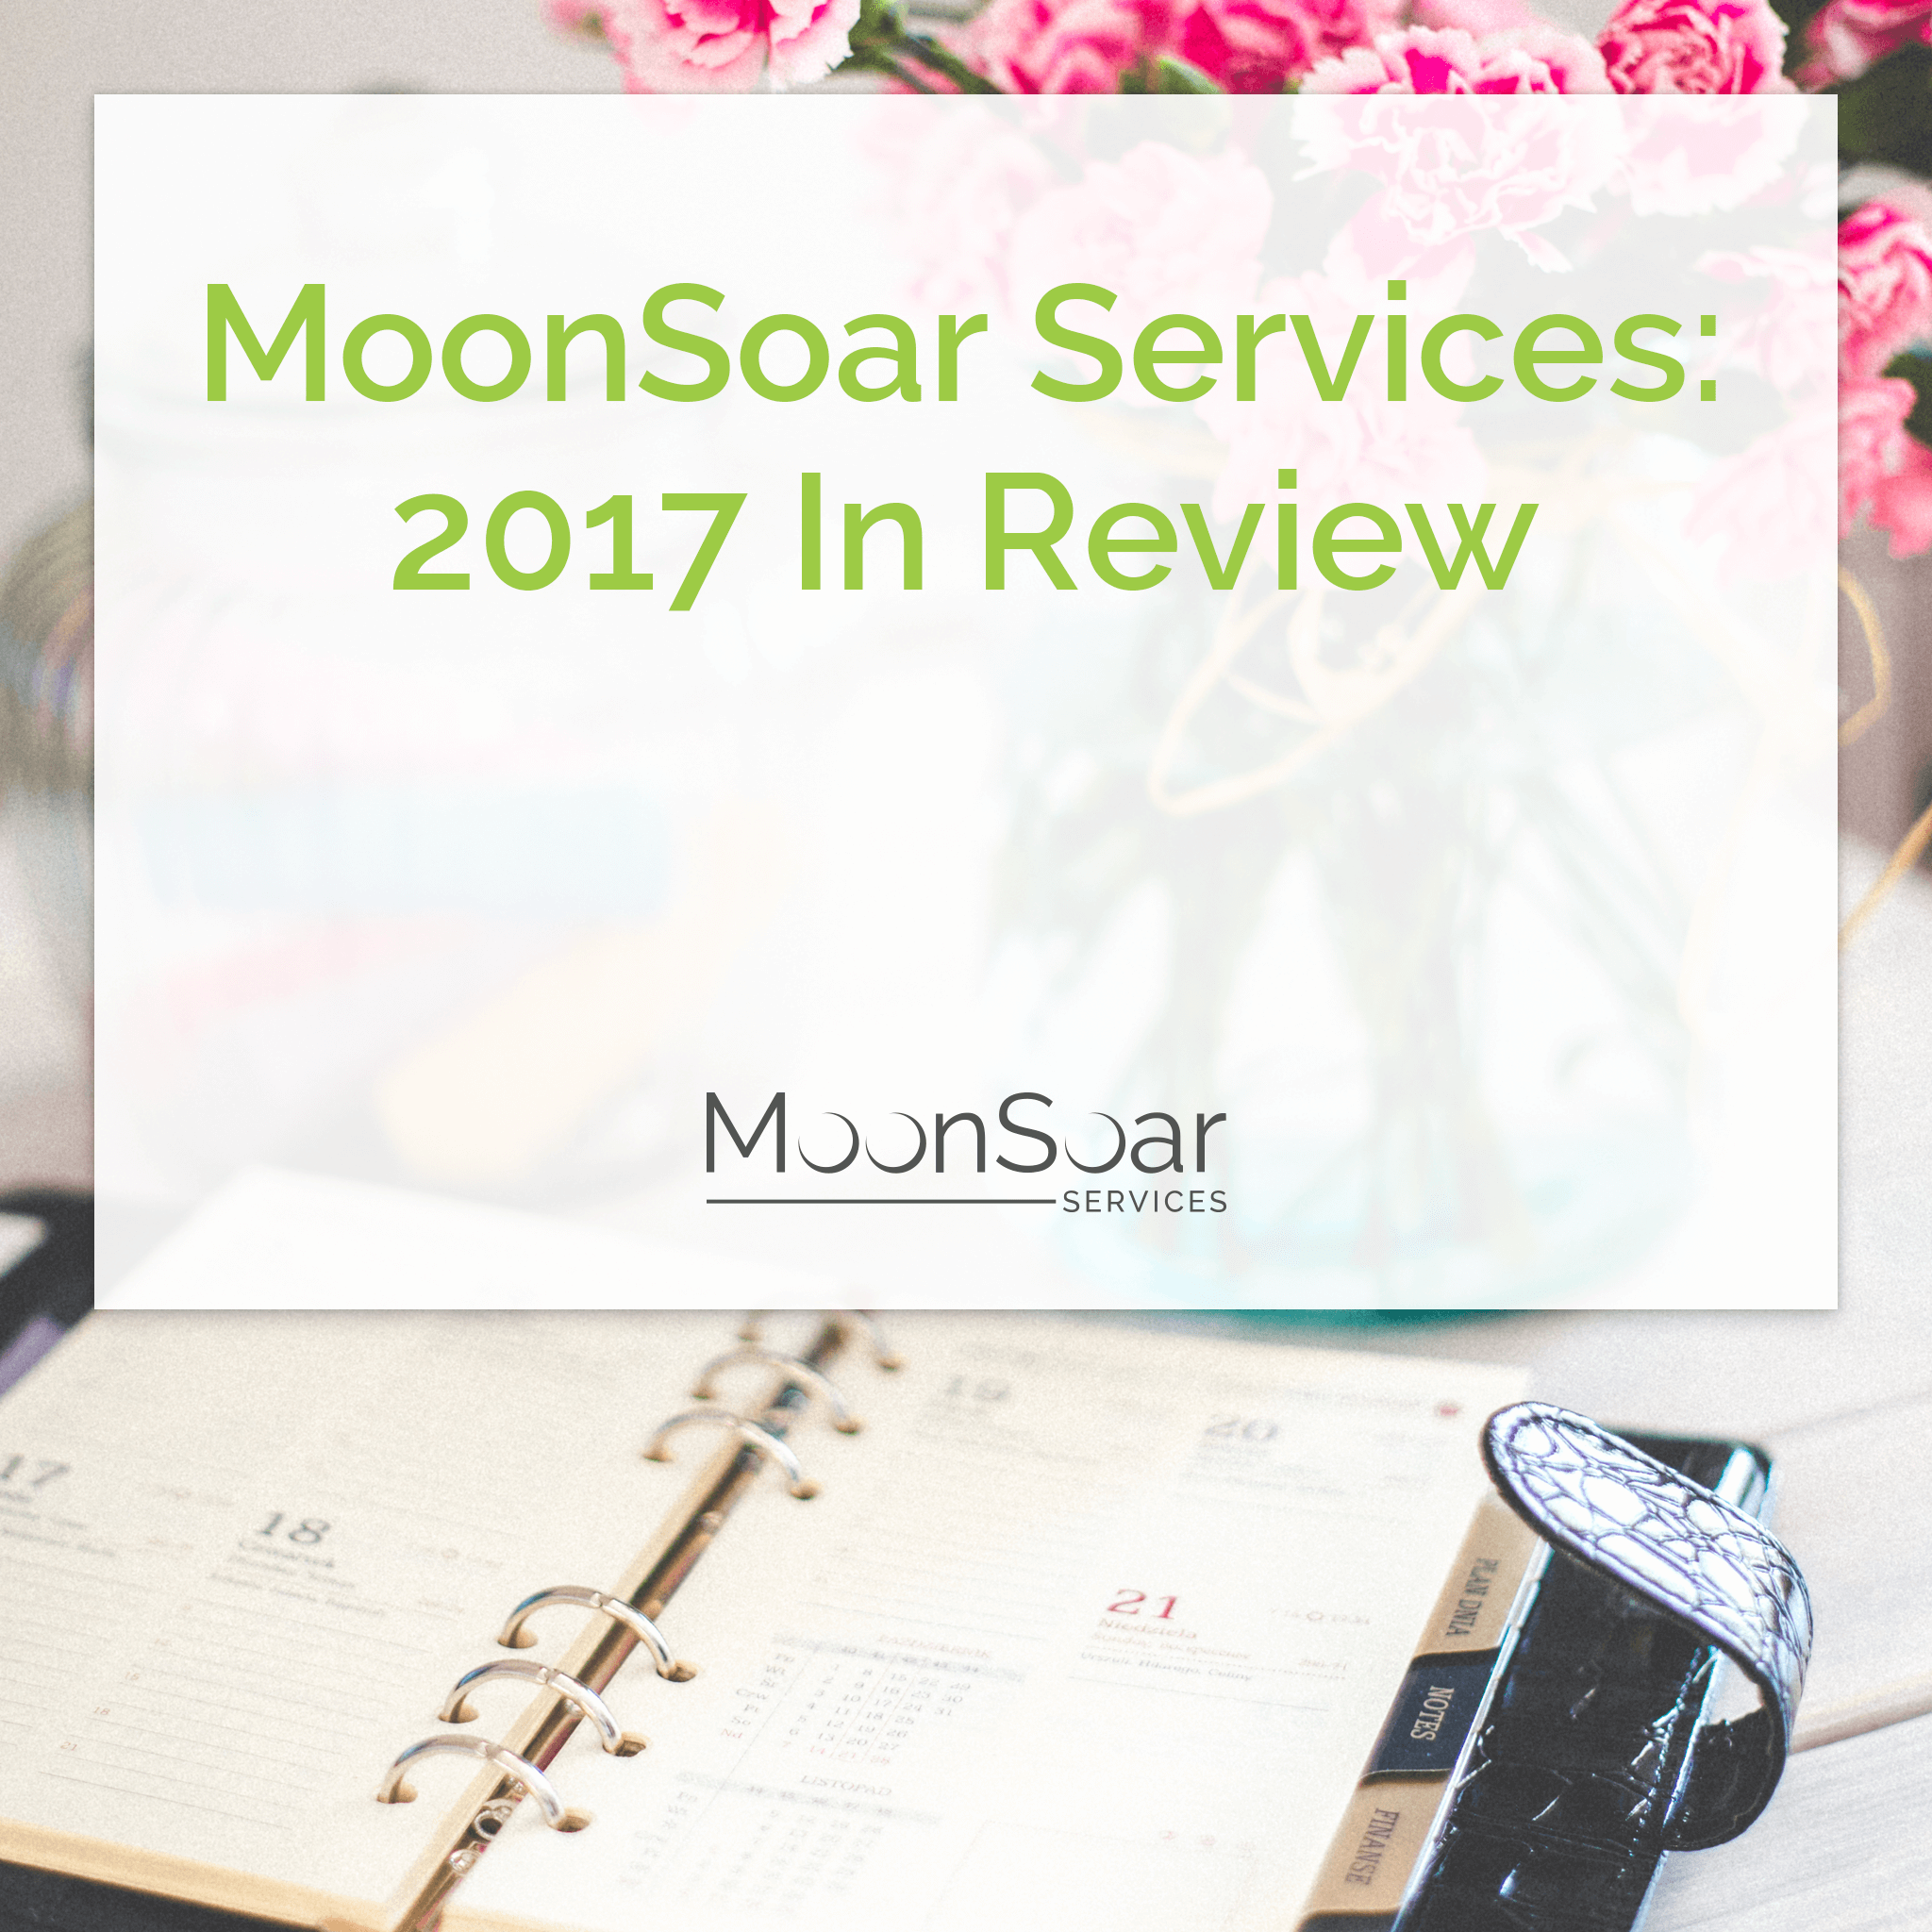 MoonSoar Services: 2017 In Review